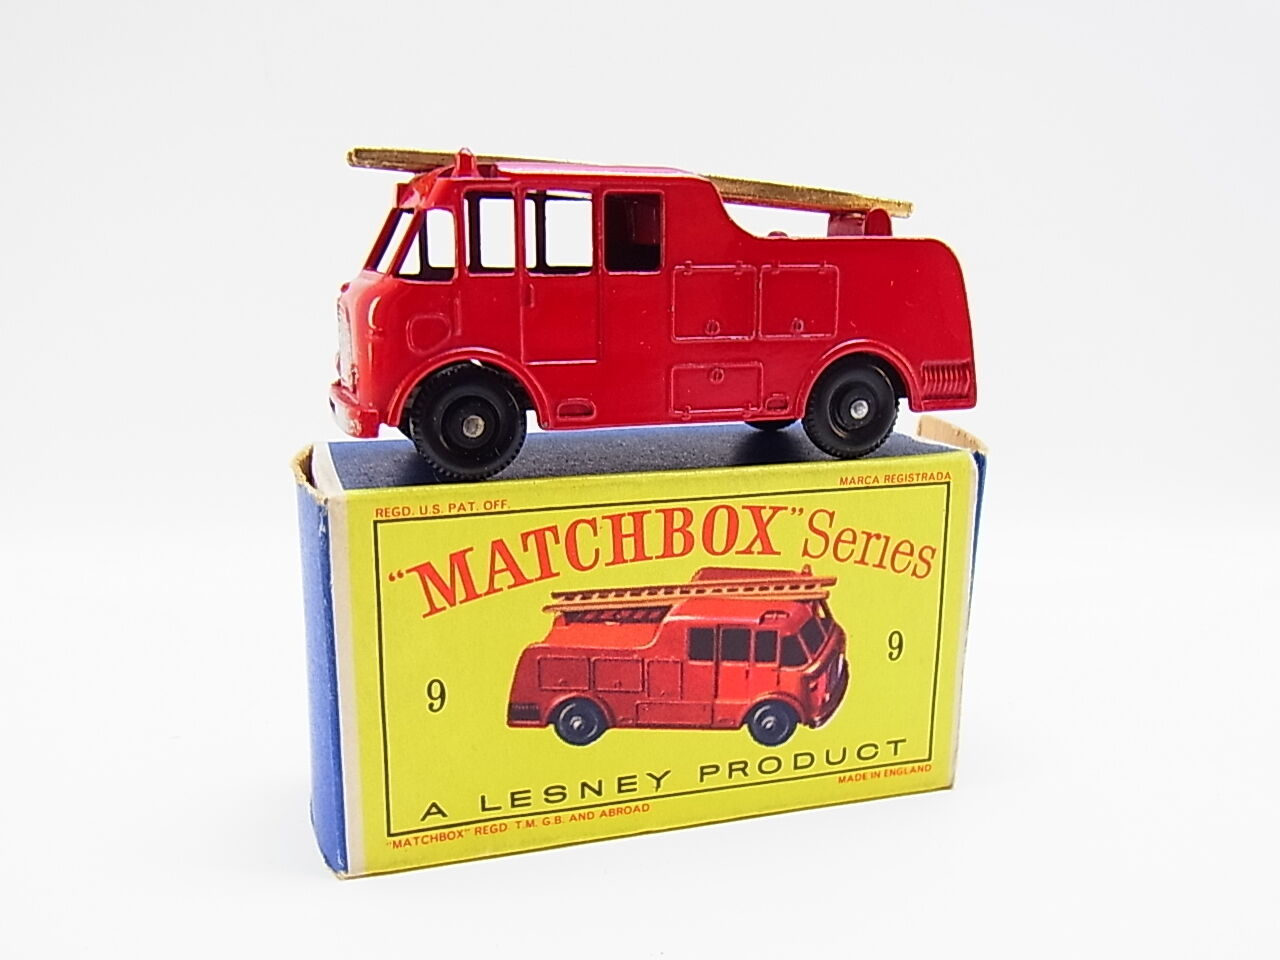 Lot 33344 | MATCHBOX 9 C Merryweather Merryweather Merryweather Ser. III FIRE ENGINE CAMION COME NUOVO  D  - BOX a8e273